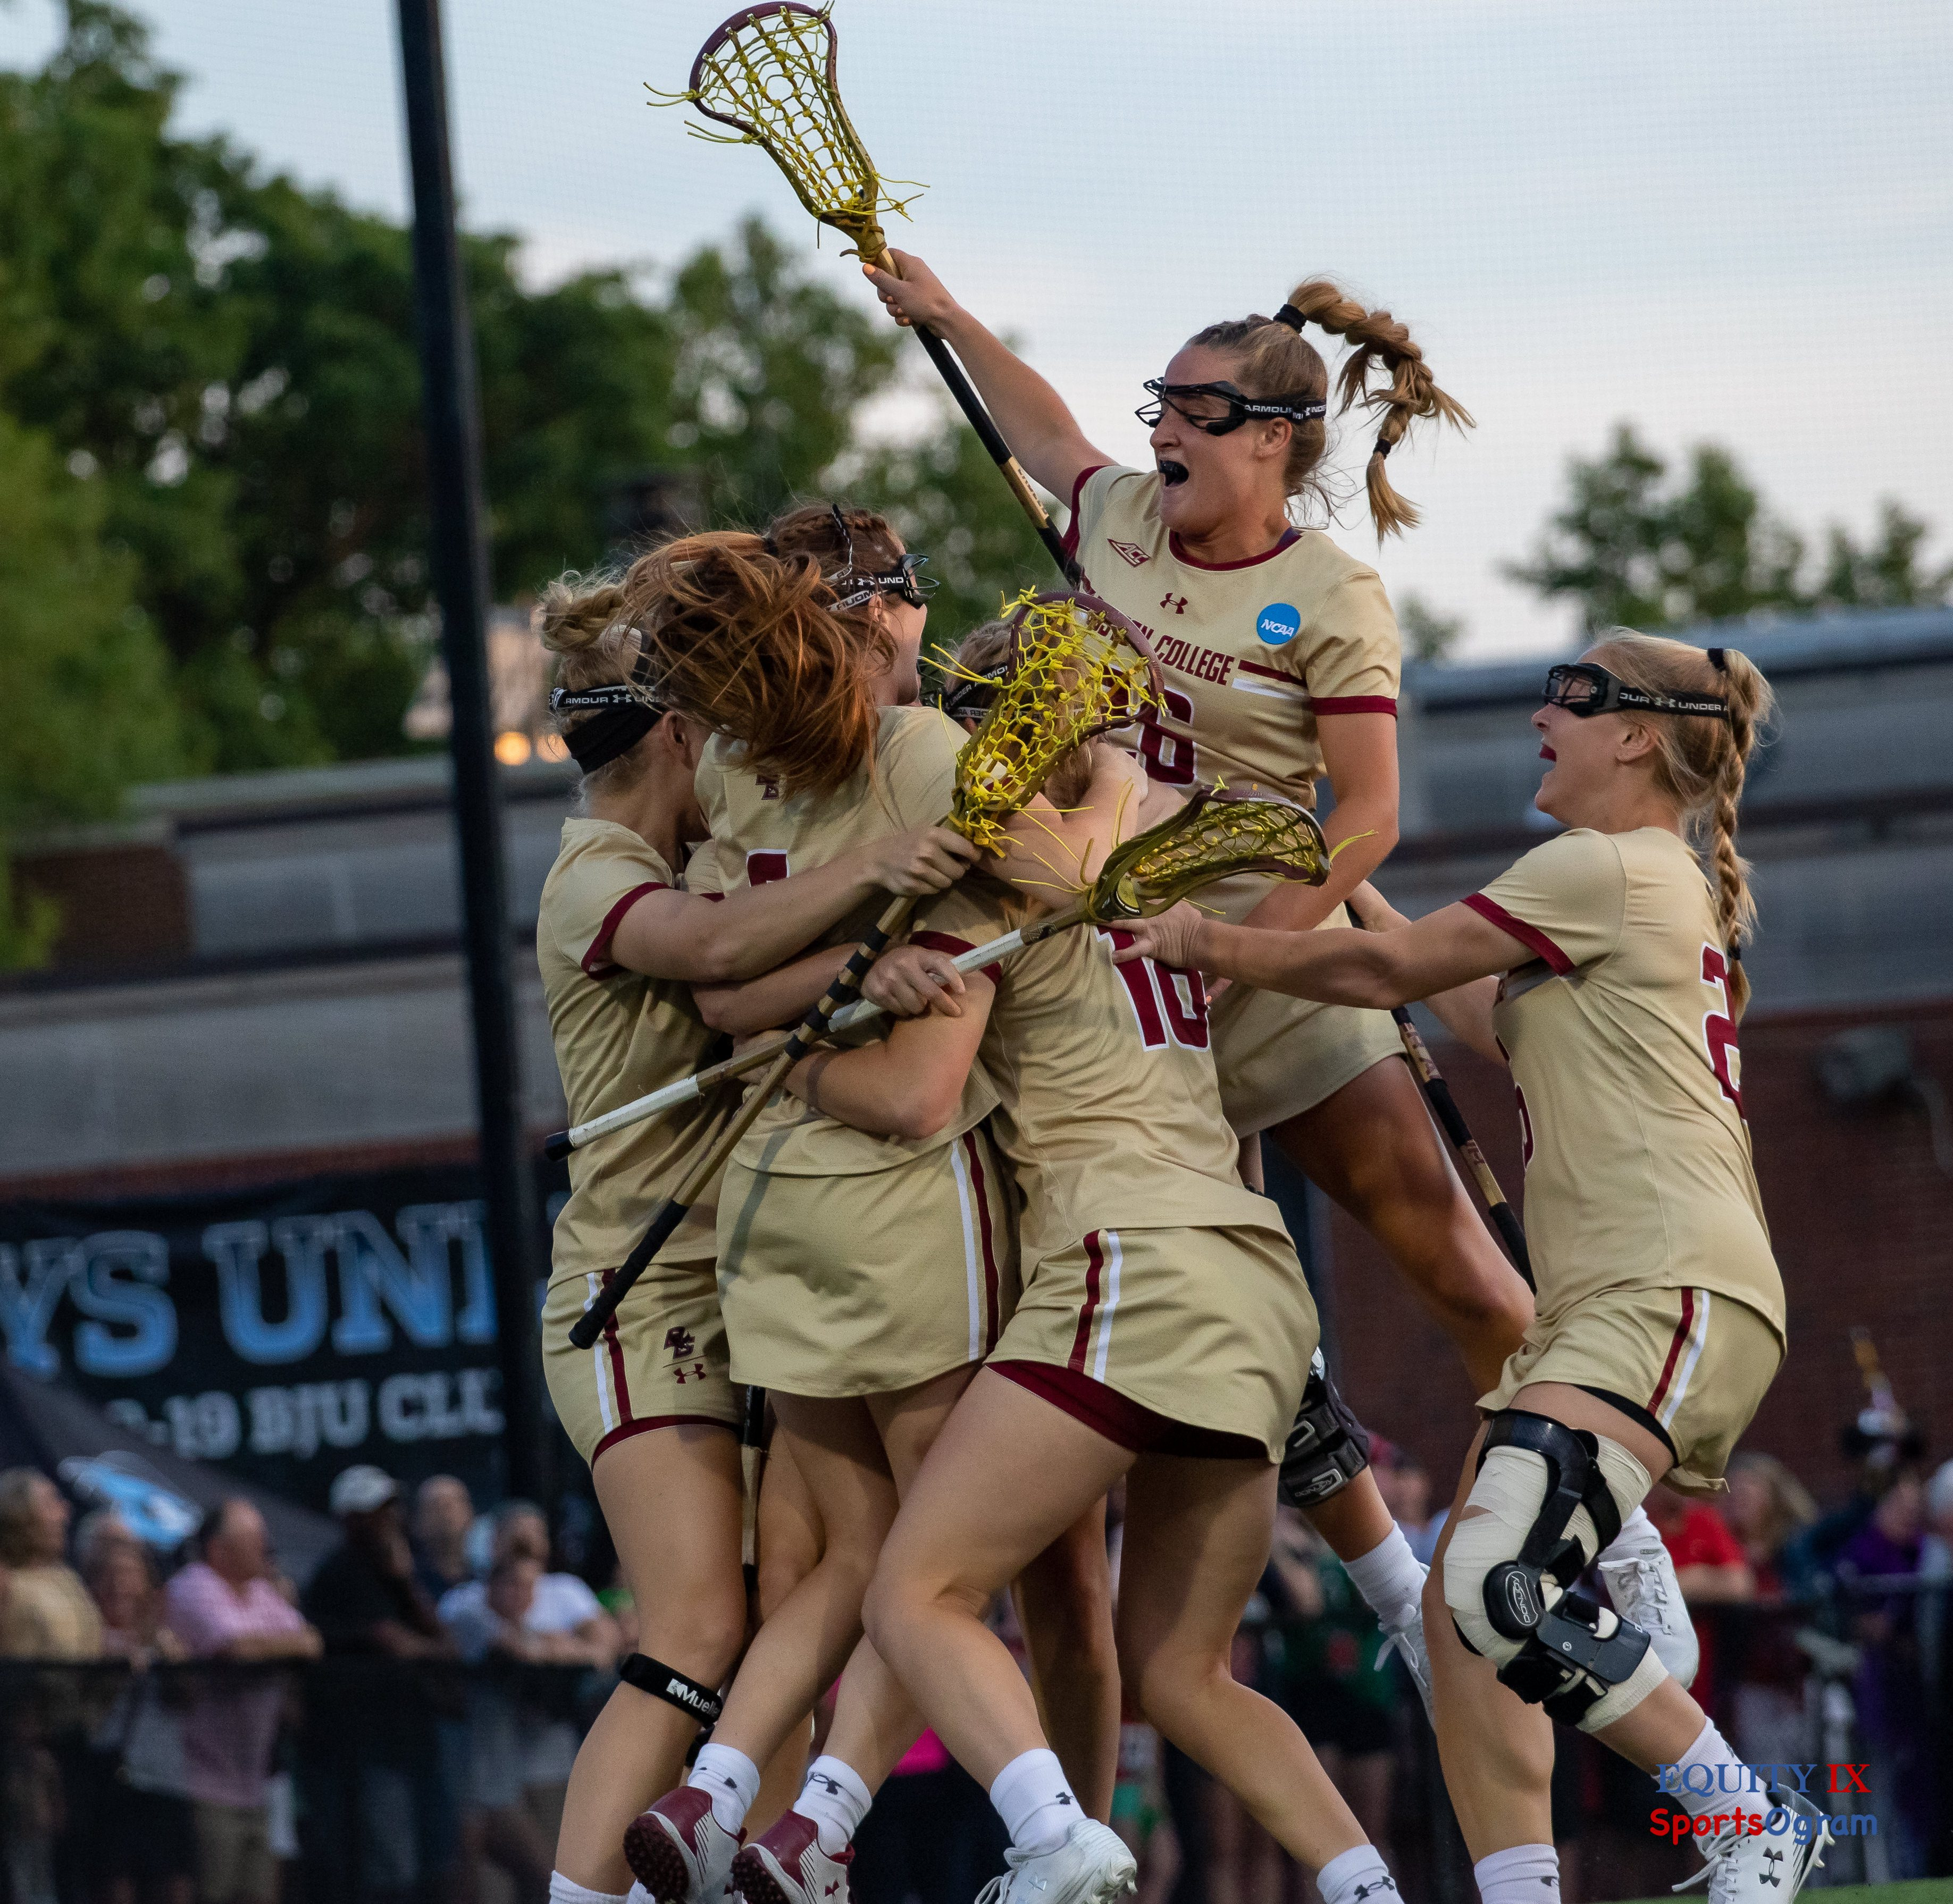 Boston College women's lacrosse team celebrates after #2 Sam Apuzzo scores winning goal in overtime - #26 Cara Urbank (Boston College) soars above all of the other players with her lacrosse extended and braided ponytail - 2019 NCAA Women's Lacrosse Final Four © Equity IX - SportsOgram - Leigh Ernst Friestedt